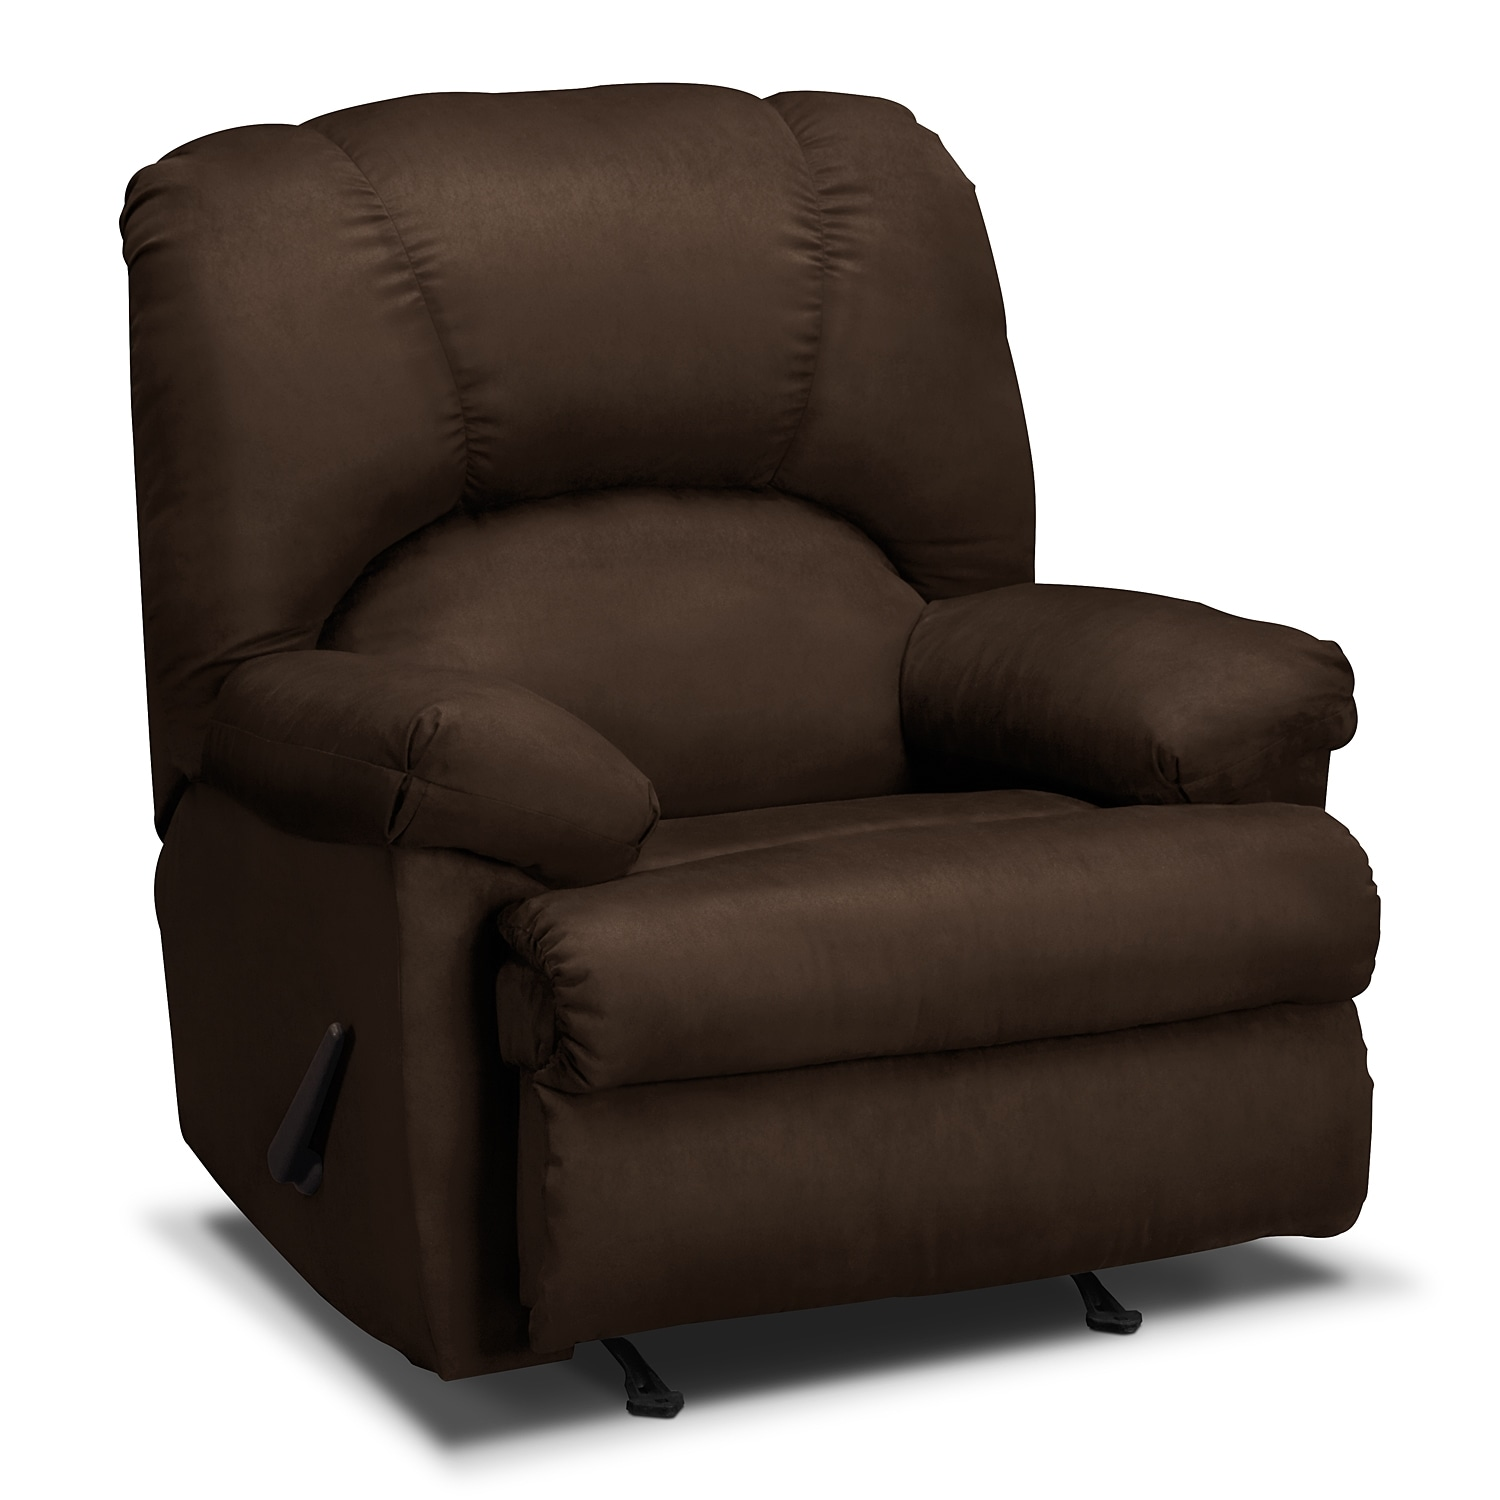 Quincy Rocker Recliner - Chocolate